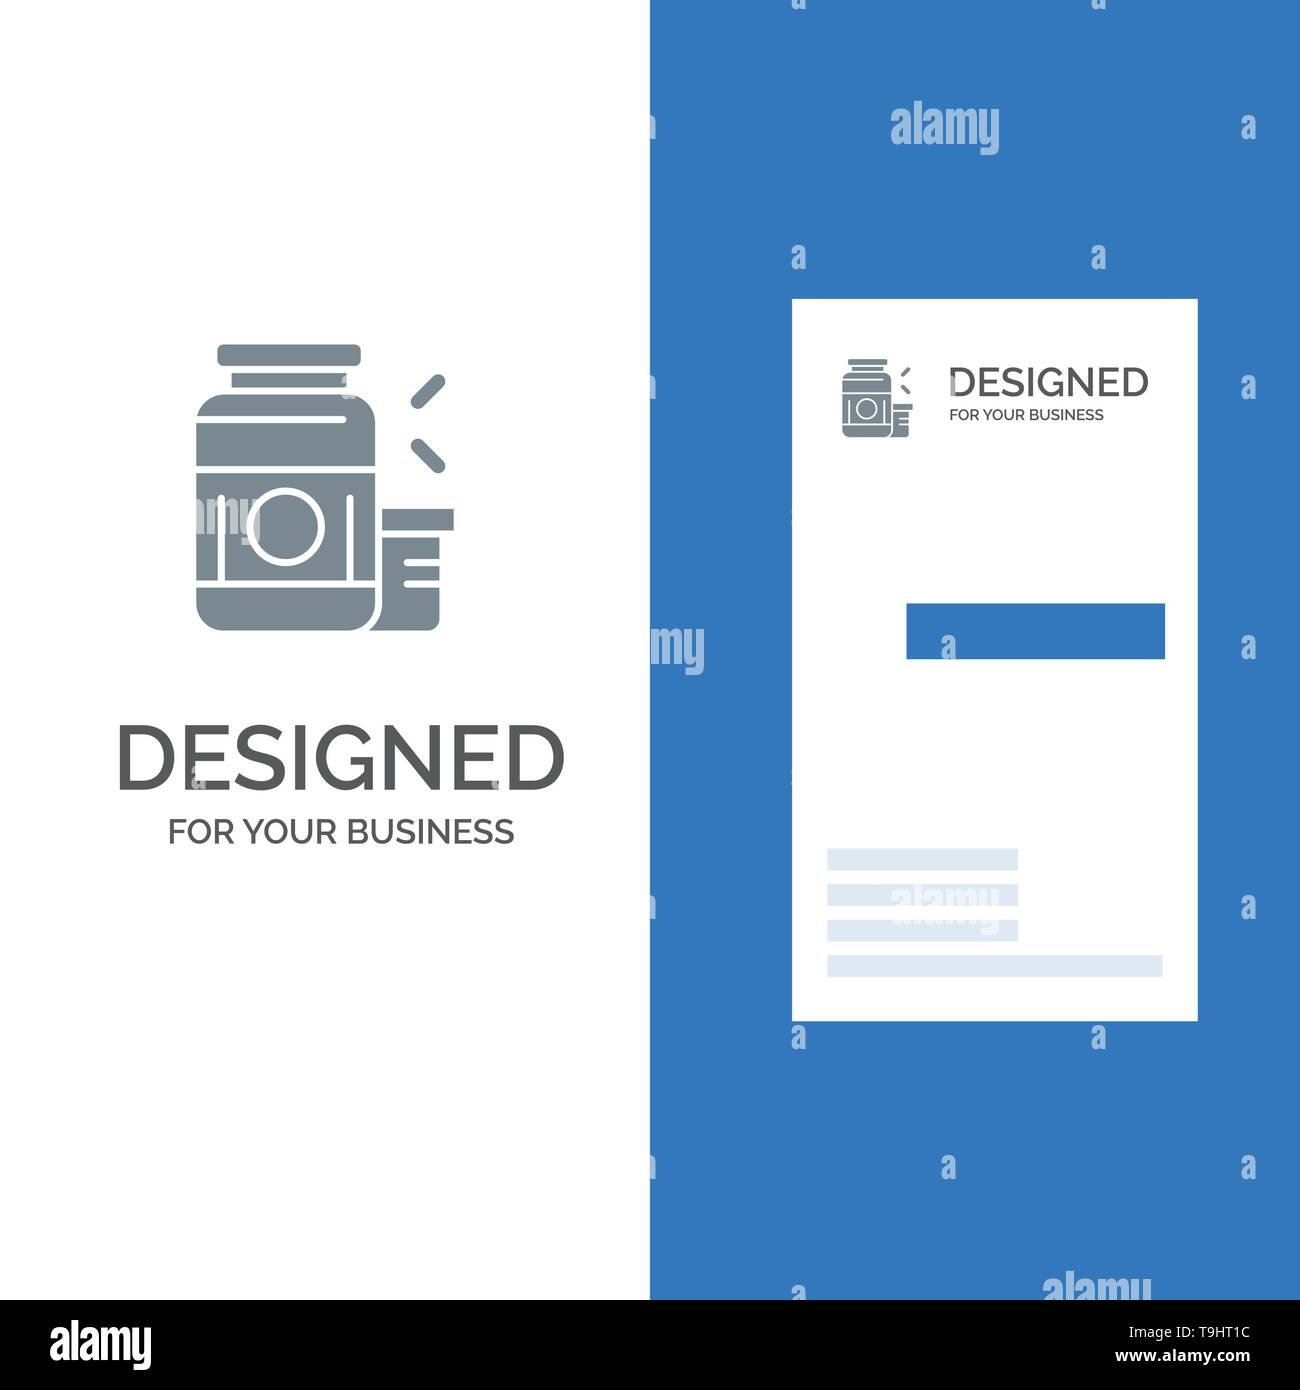 Bodybuilding, Gainer, Protein, Sports, Supplement Grey Logo Design and Business Card Template - Stock Image